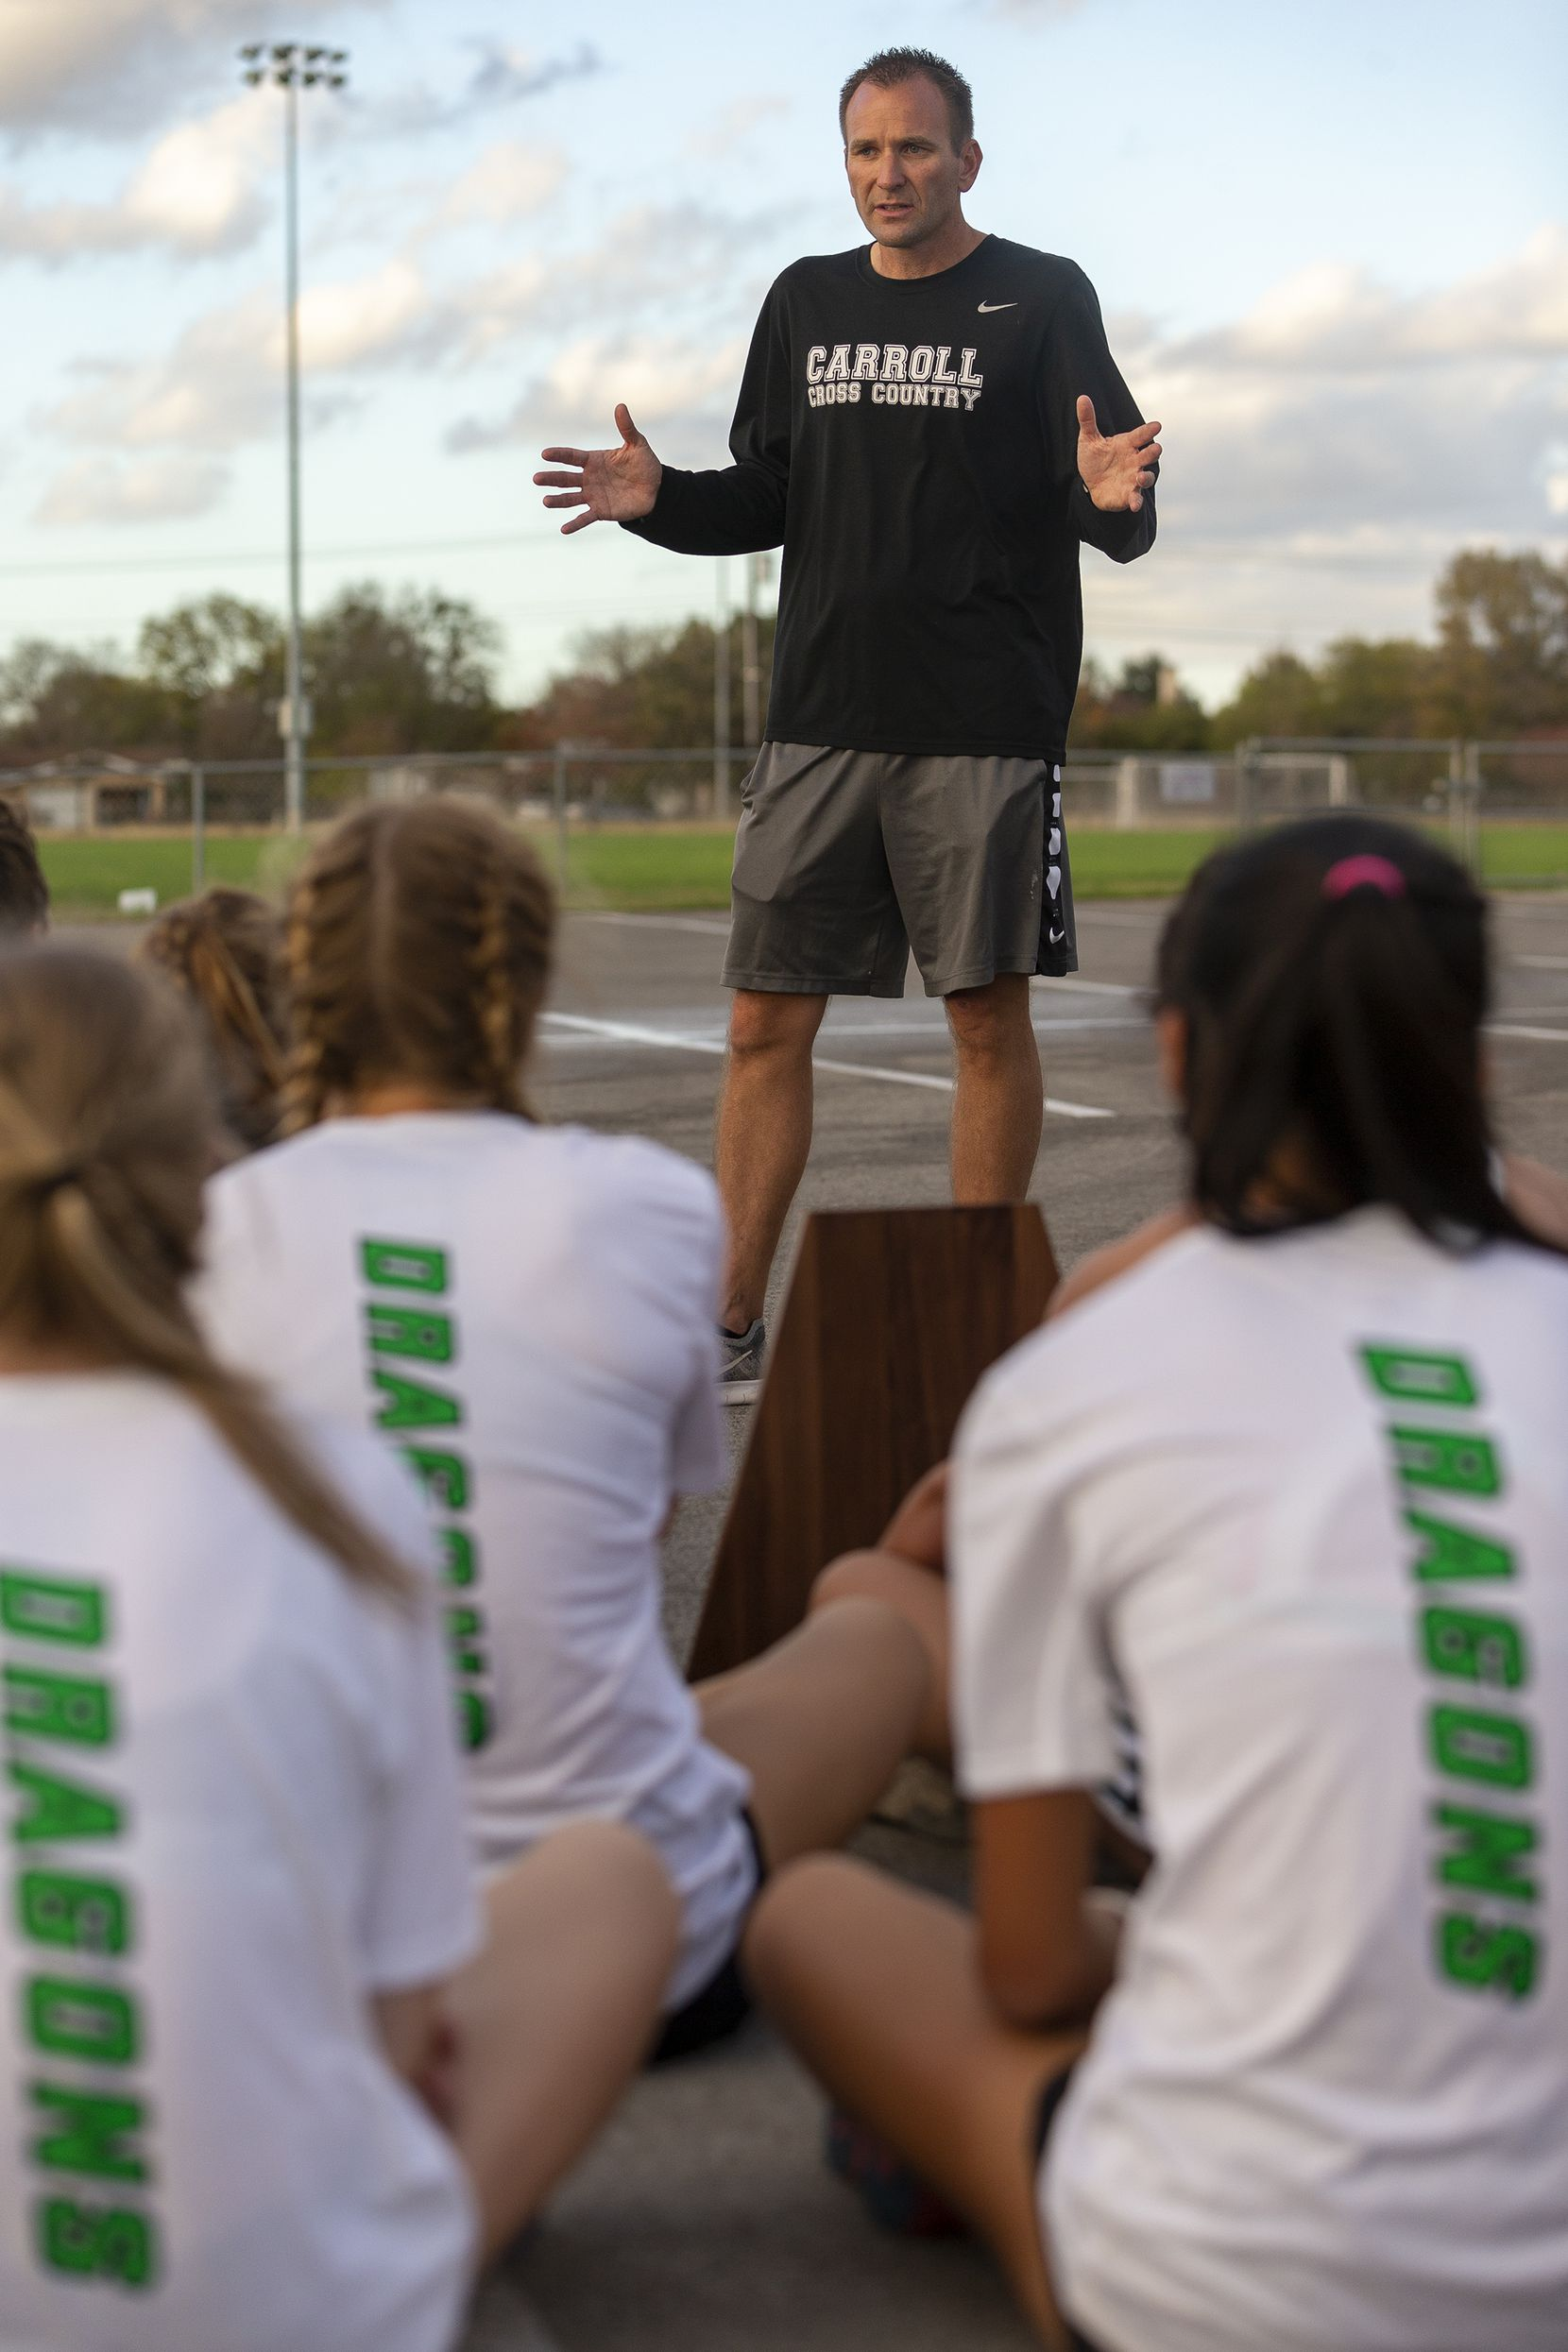 Southlake Carroll coach Justin Leonard speaks with his girls and boys team after finishing first in the boys and second in the girls team competitions of the UIL Class 6A state cross country meet in Round Rock, Tuesday, Nov., 24, 2020. (Stephen Spillman/Special Contributor)